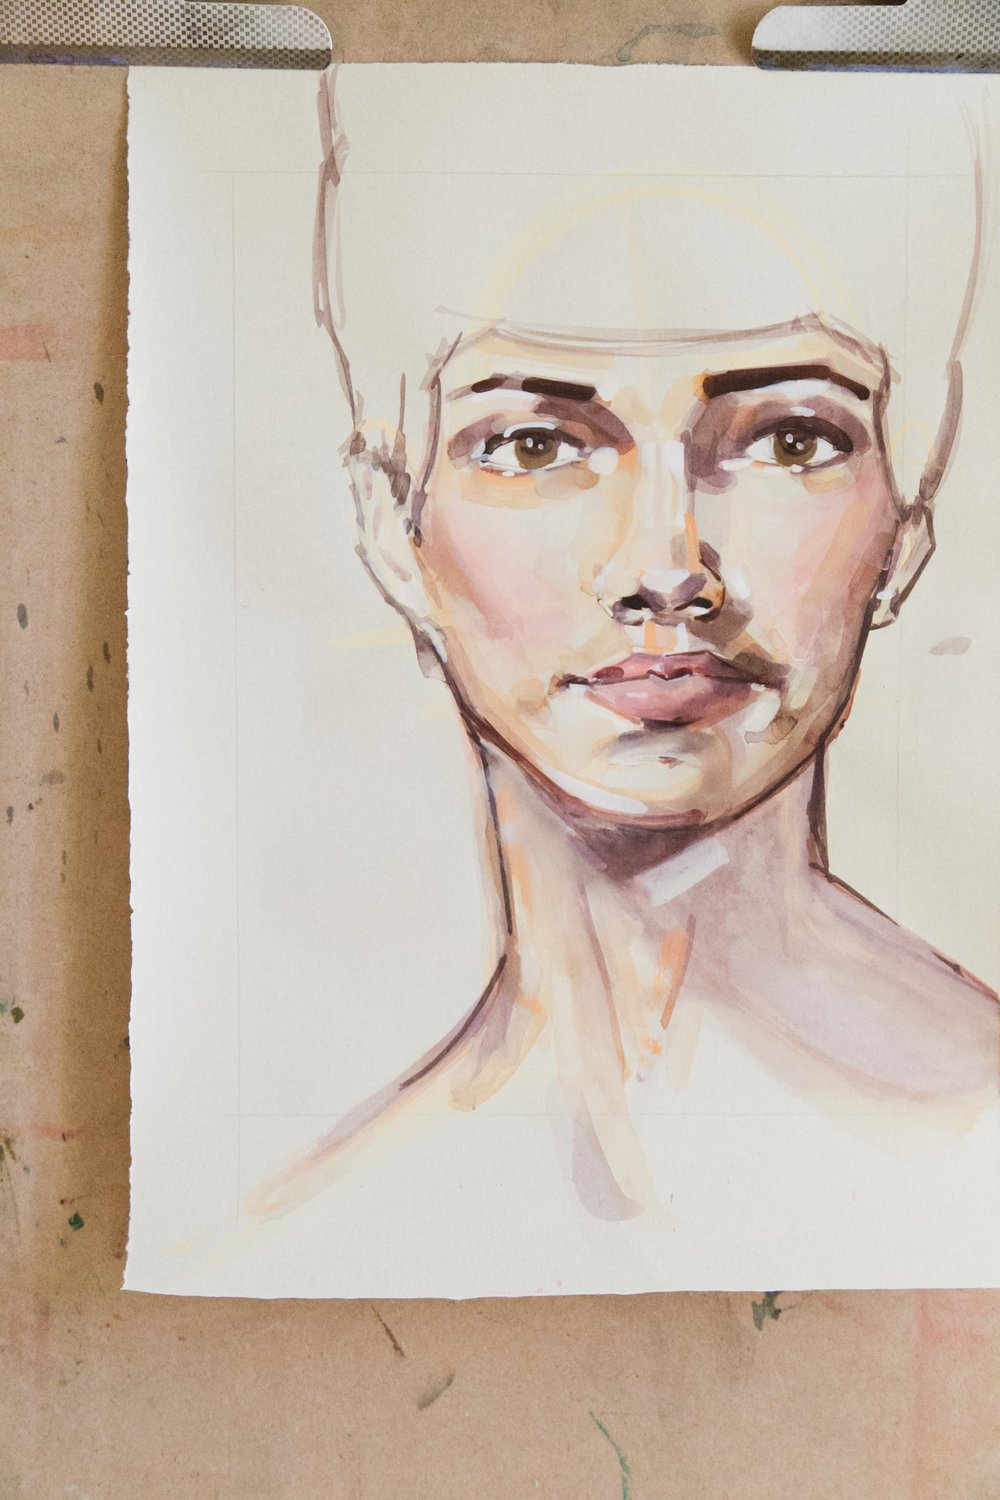 Victoria-Riza Fashion Artist Illustrator and Printmaker | A Mother's Portrait